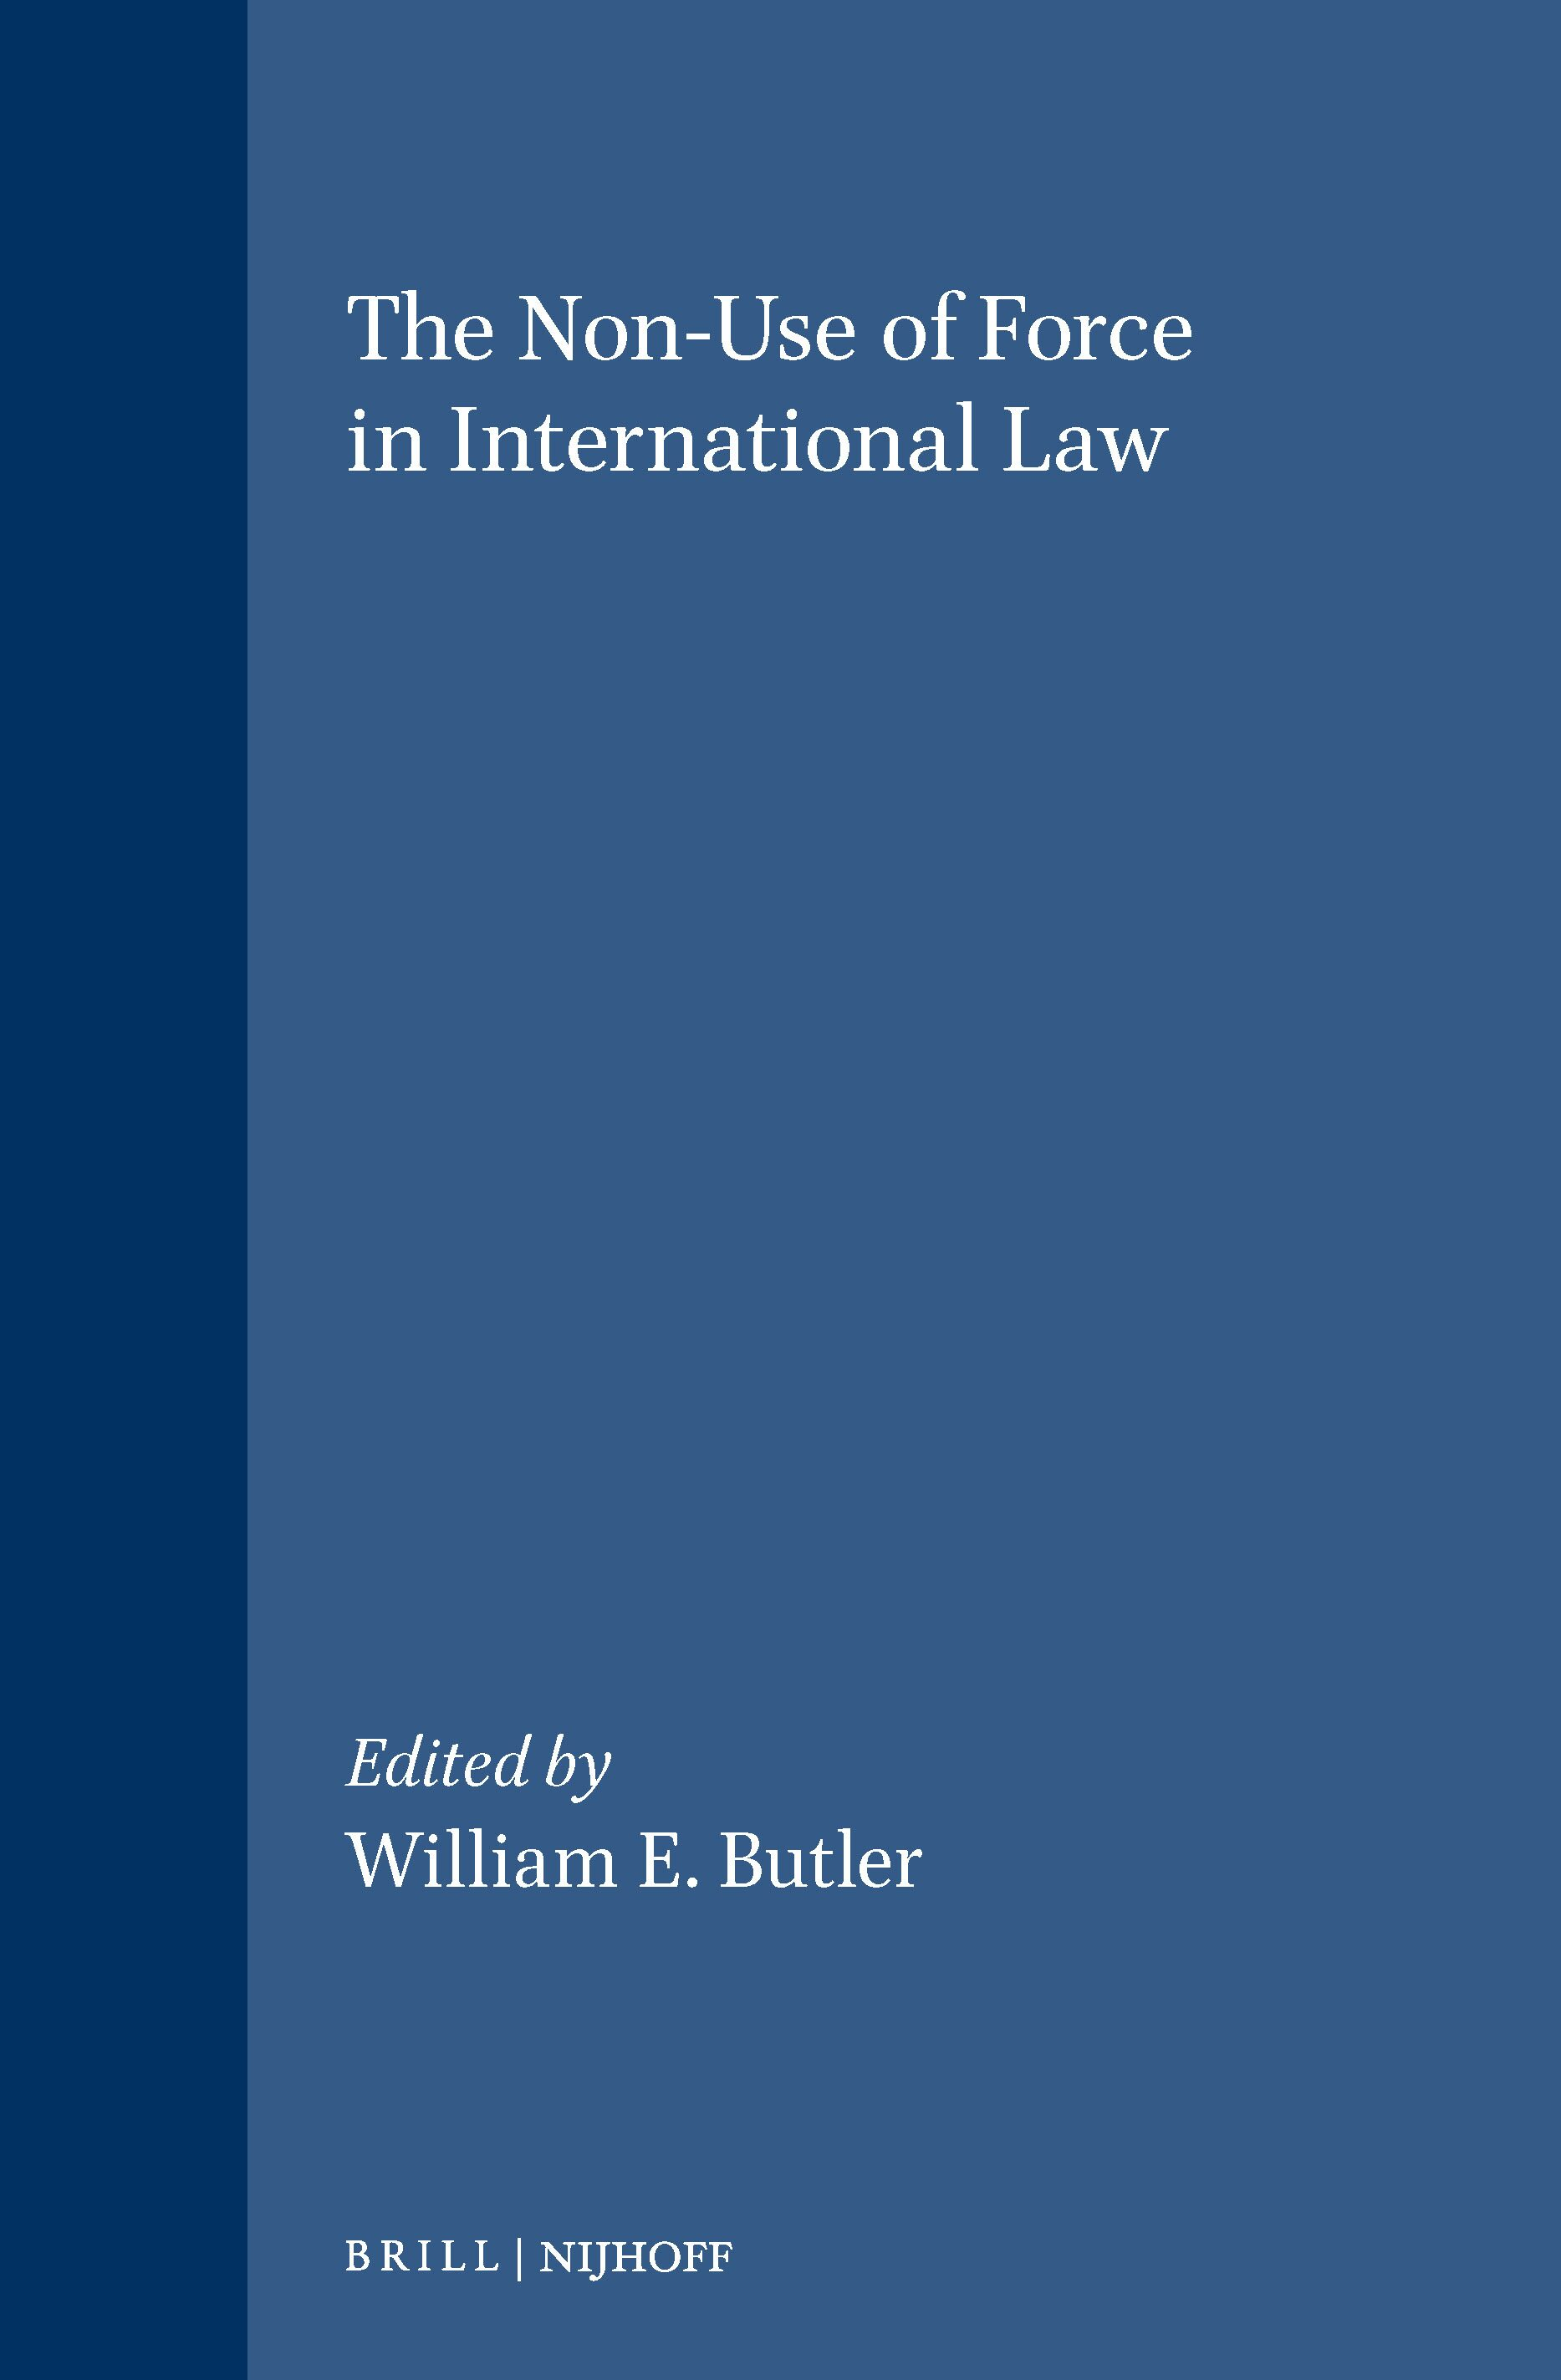 Non-Use of Force in International Law